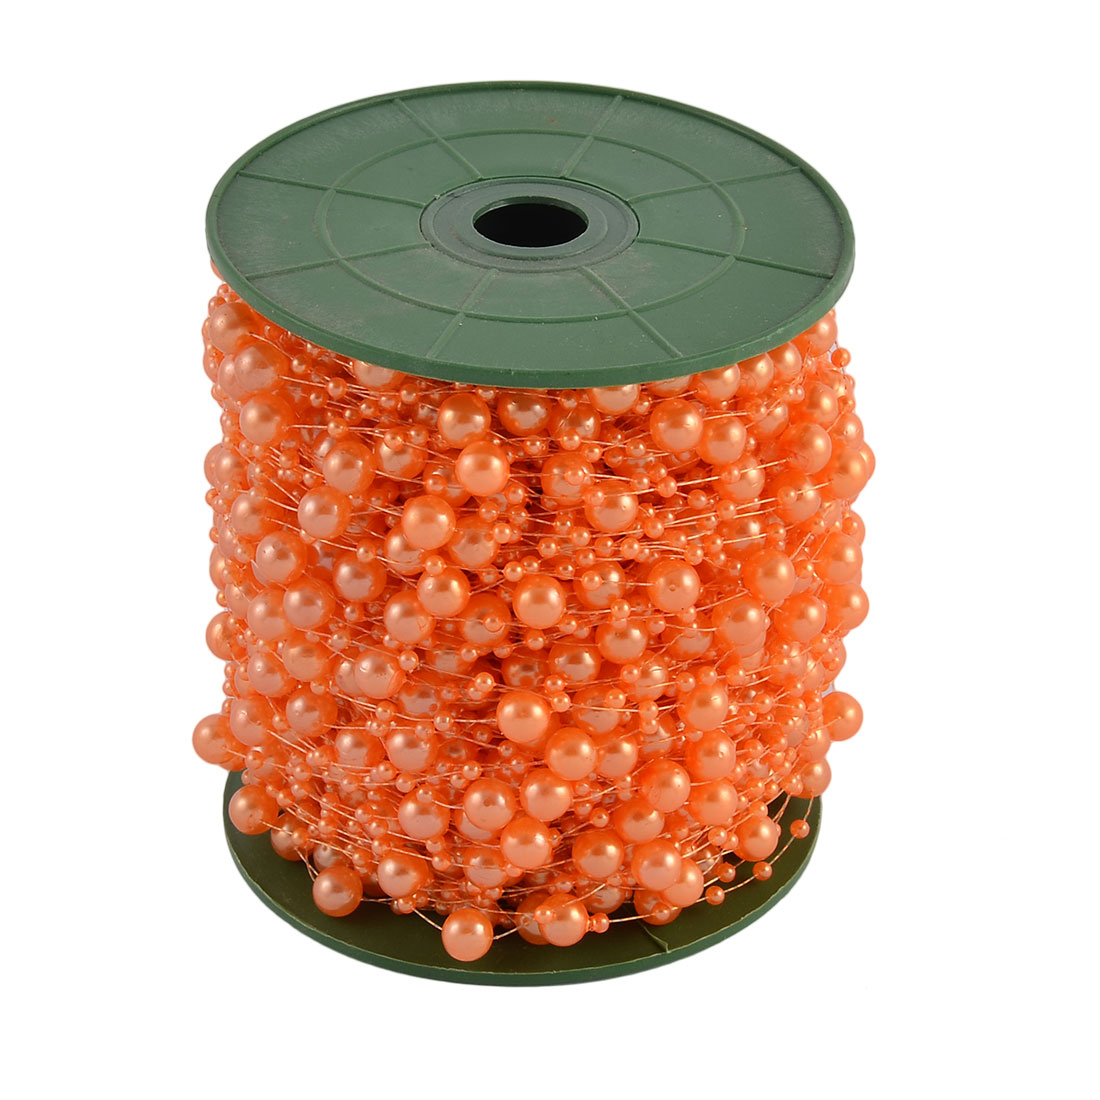 Festival Party Crafting DIY Garland Flower Table Decoration Imitation Pearl Beads String Roll Orange